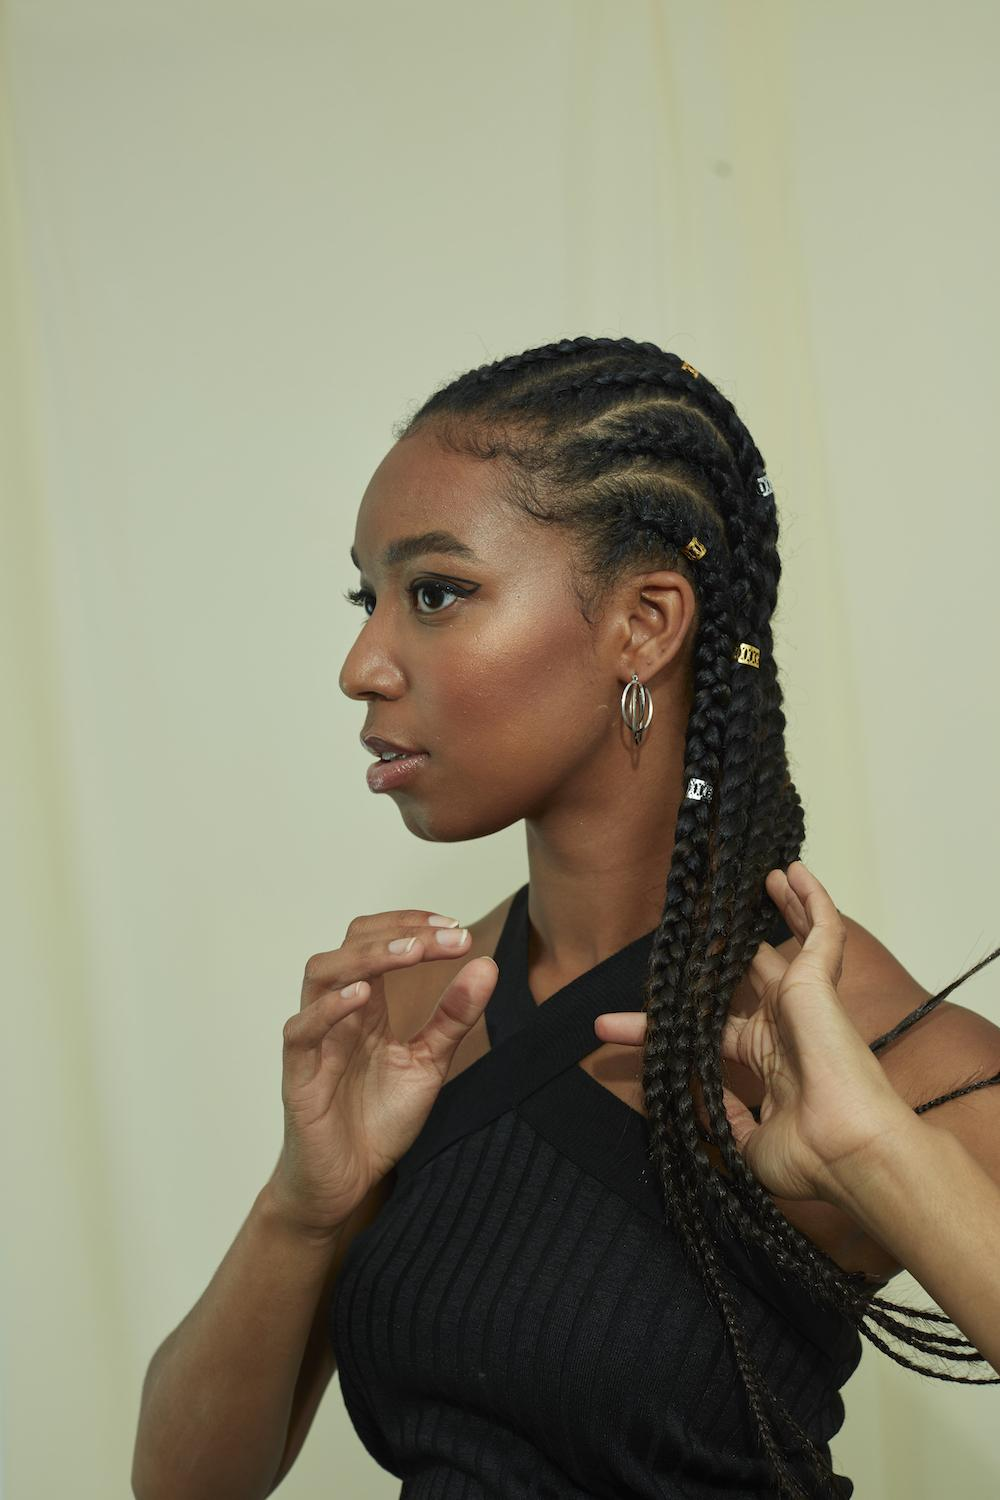 Braid Styles For Black Women To Try